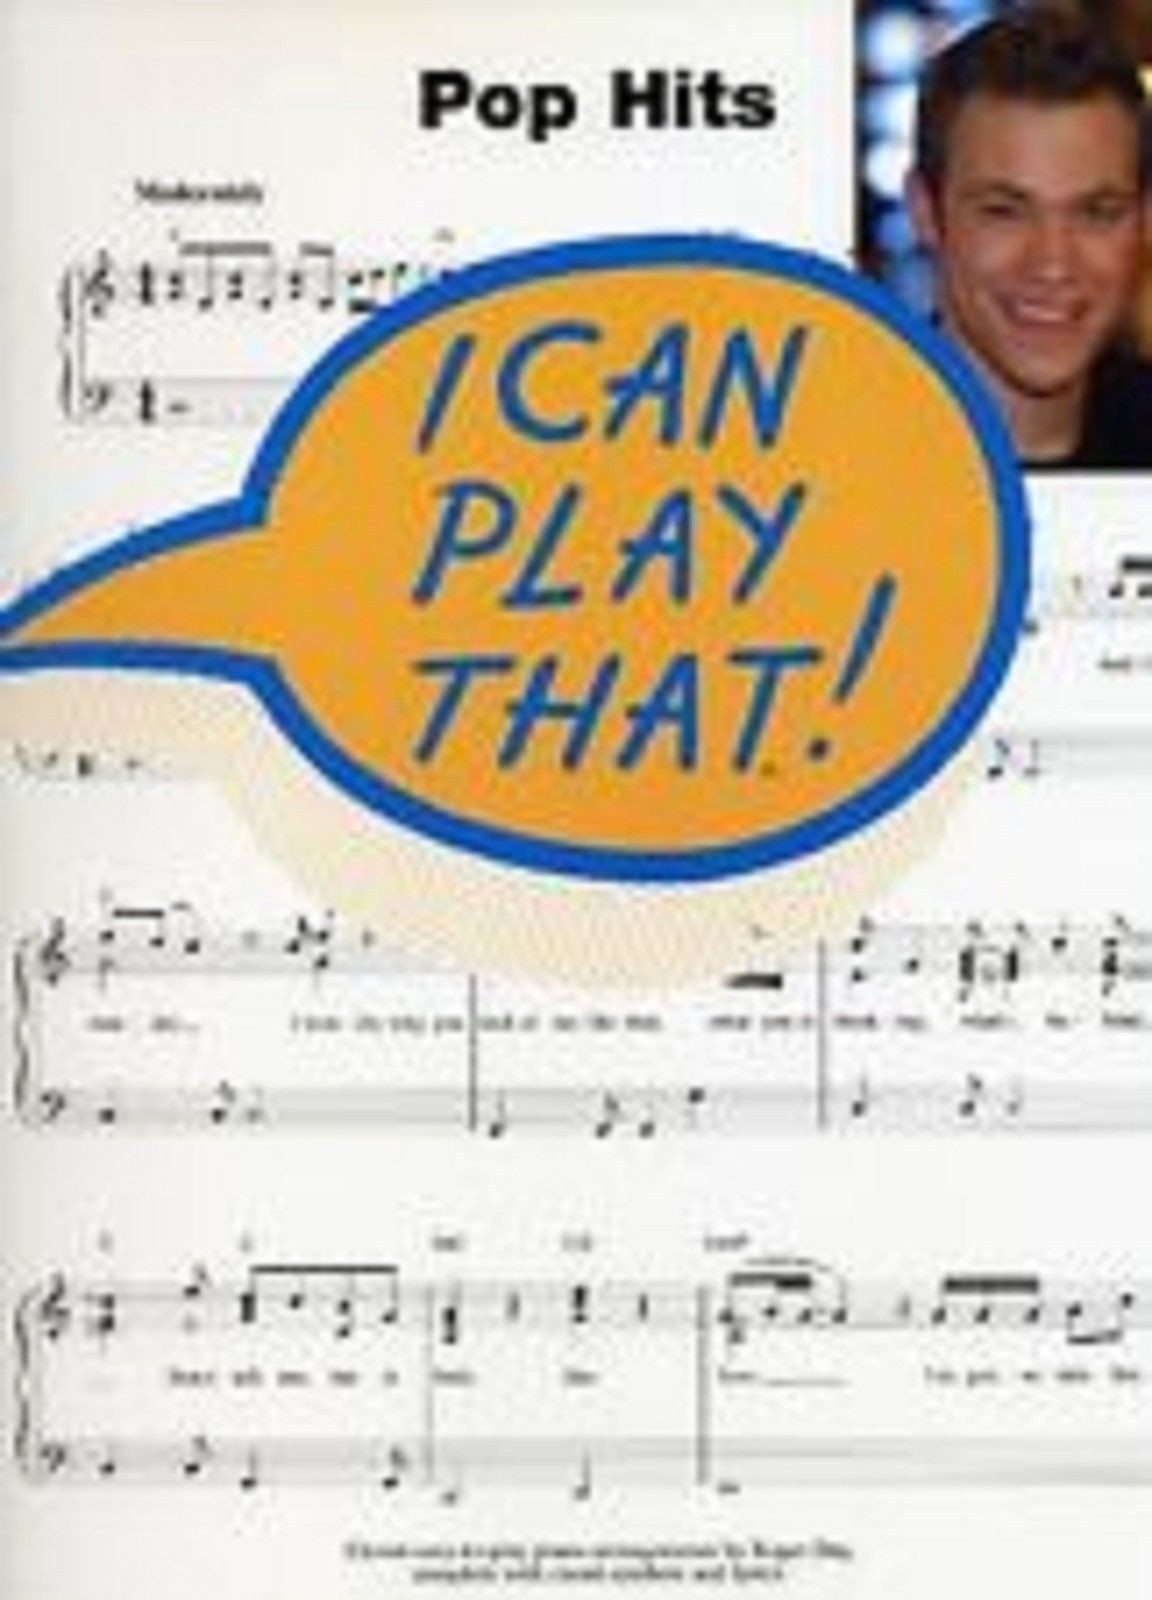 I Can Play That! Pop Hits Very Easy Piano Sheet Music Grades 1-3 Book S20